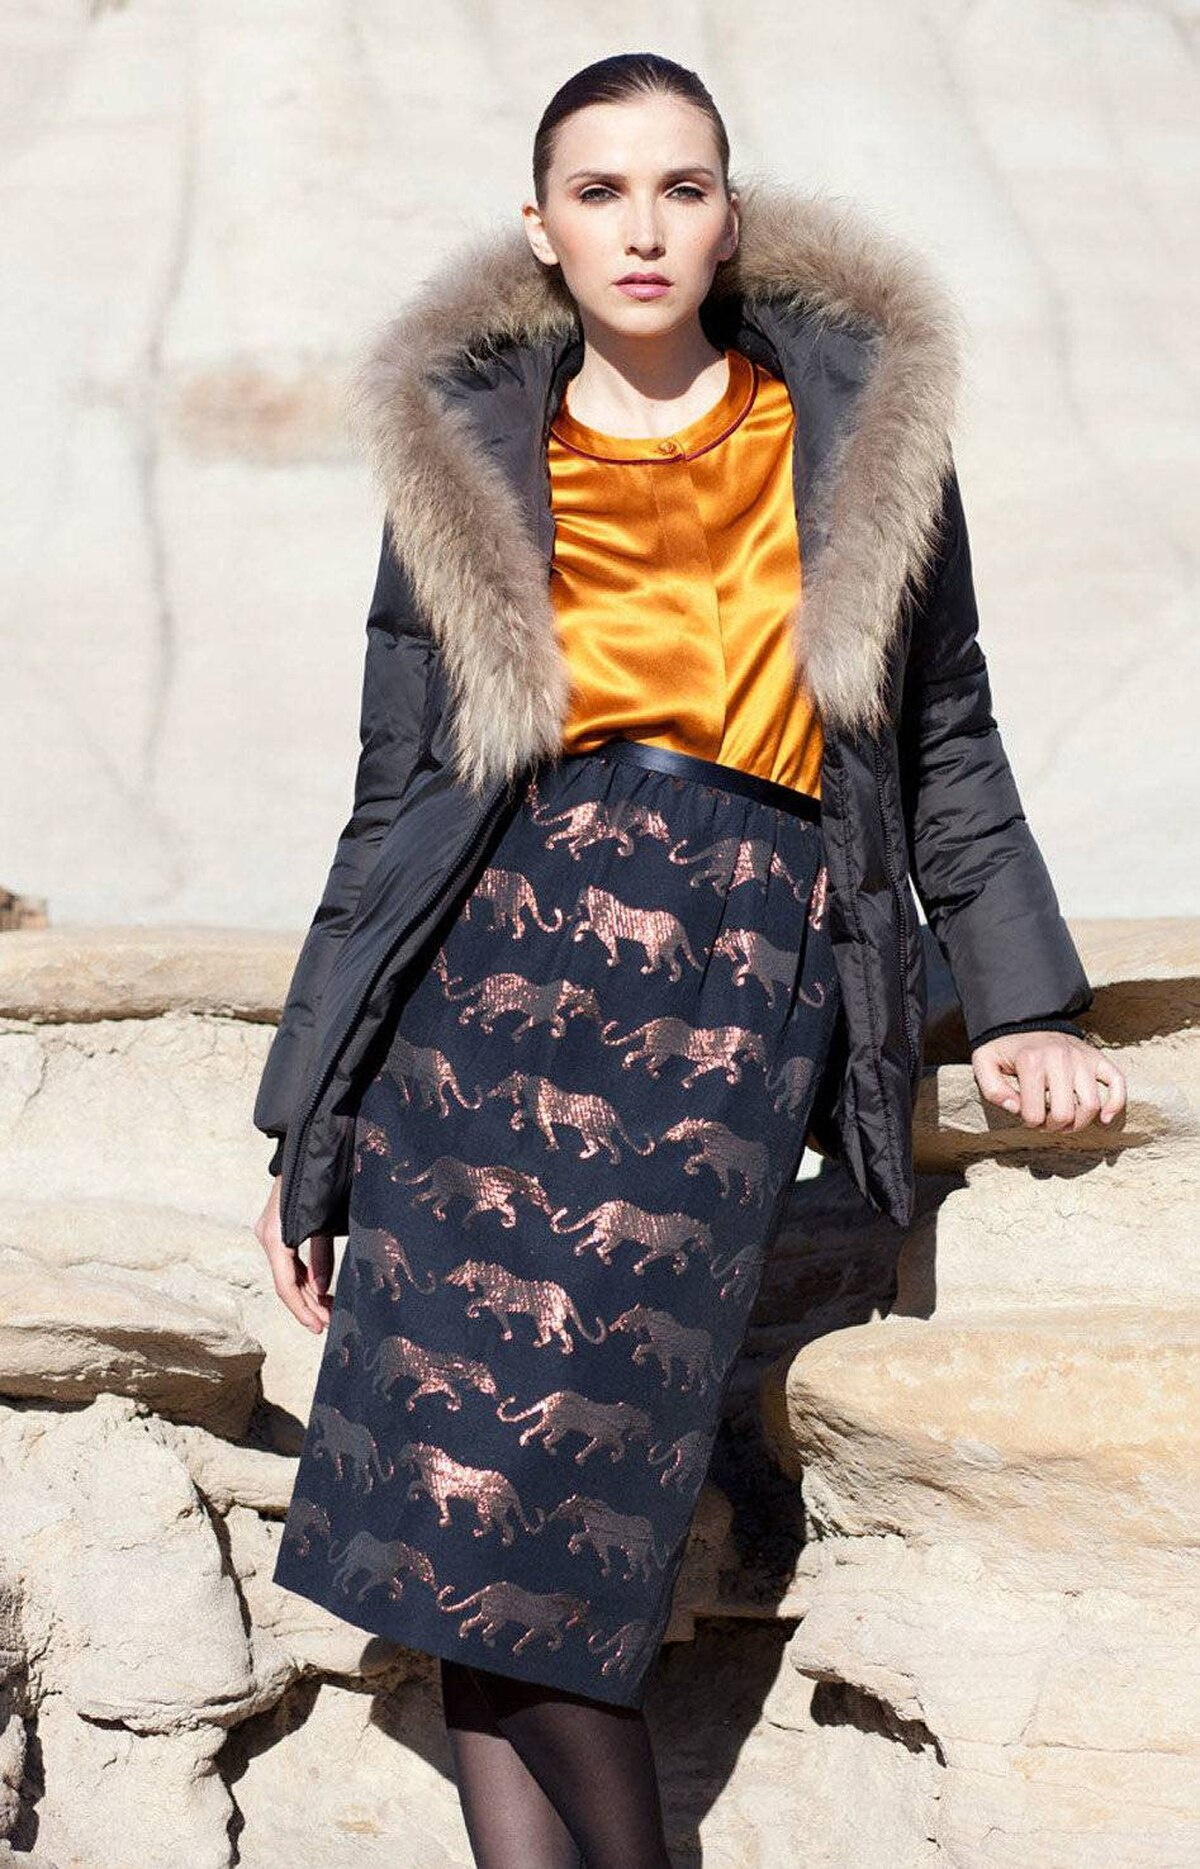 THE PARKA Mackage parka, $59 Marc by Marc Jacobs top, $305, skirt, $390 at Holt Renfrew. Photo shoot credits: Styling by Tiyana Grulovic; styling assistant, Jennie Lyle; hair and makeup by Alicja Wilkosz. Special thanks to the Alberta Tourism Board.